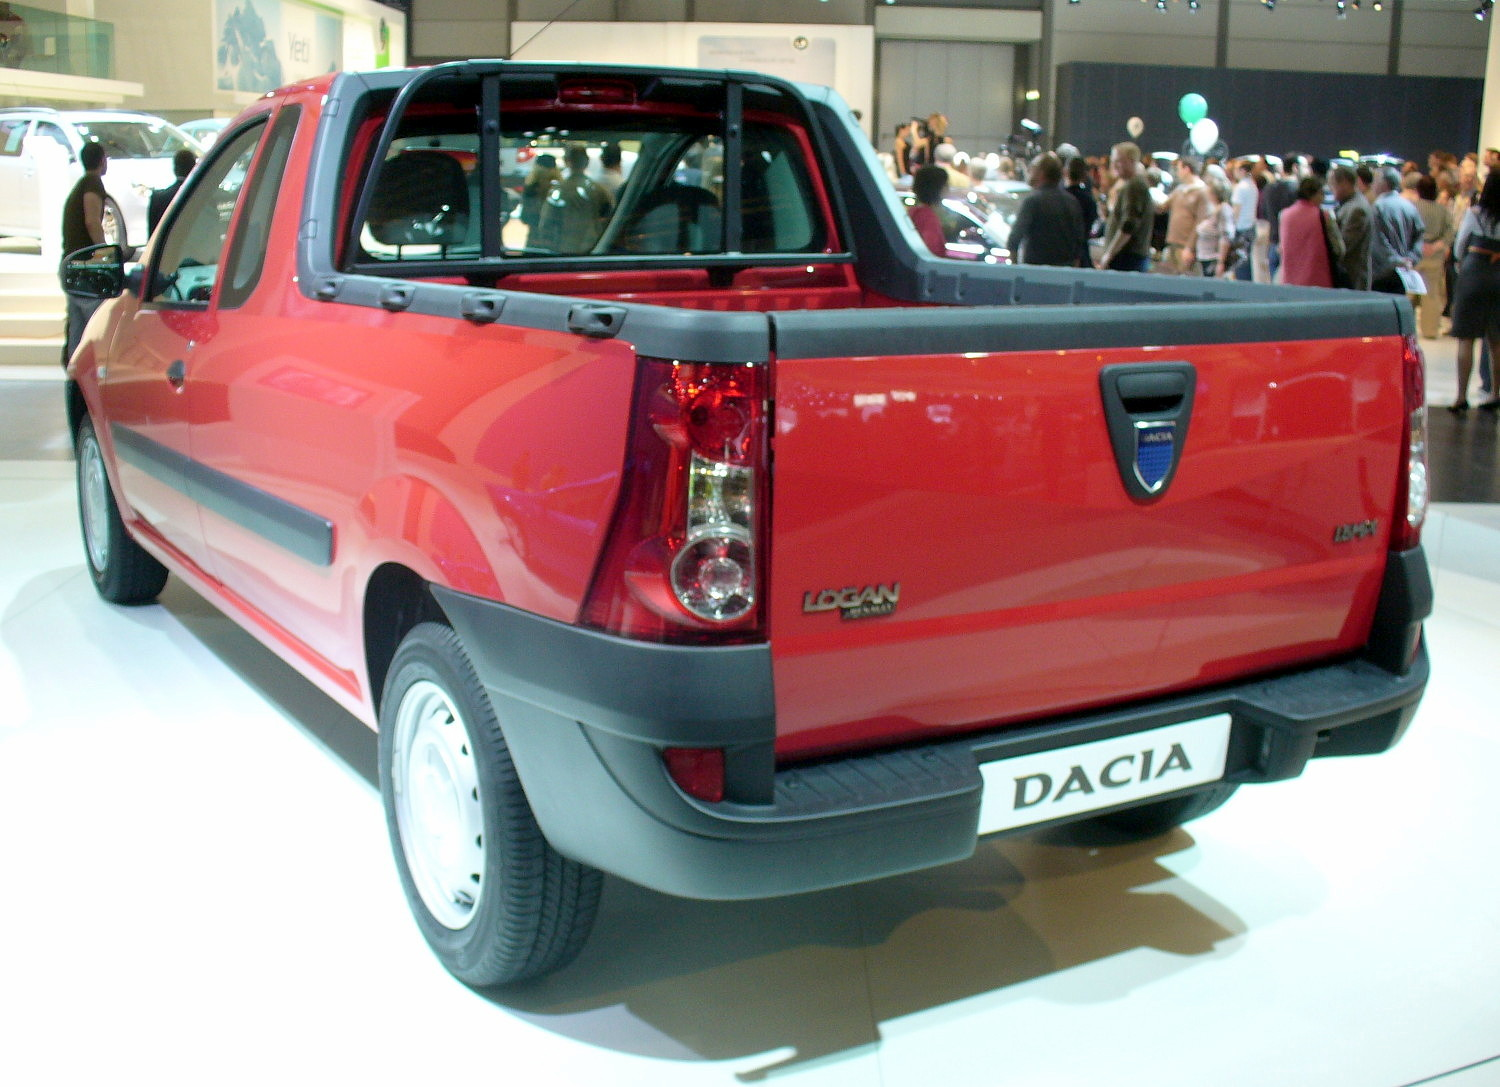 file dacia logan pickup rot heck jpg wikipedia. Black Bedroom Furniture Sets. Home Design Ideas